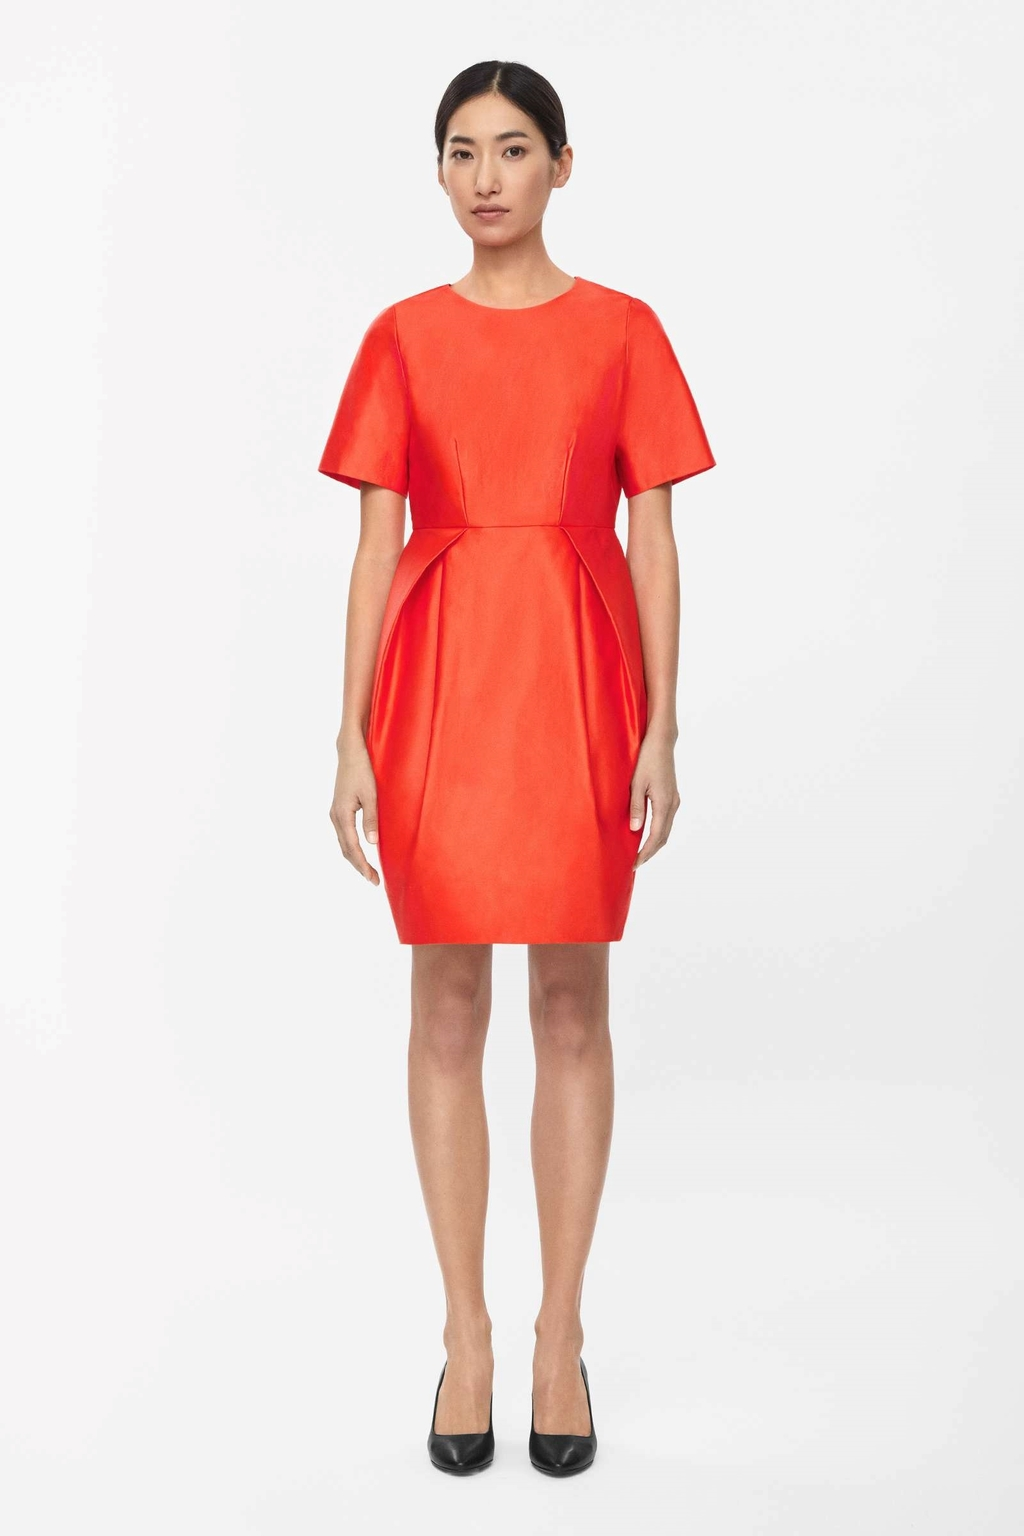 Dress With Pleated Skirt - length: mid thigh; fit: tailored/fitted; pattern: plain; style: tulip; predominant colour: bright orange; occasions: evening, occasion; fibres: cotton - 100%; neckline: crew; sleeve length: short sleeve; sleeve style: standard; texture group: structured shiny - satin/tafetta/silk etc.; pattern type: fabric; season: s/s 2015